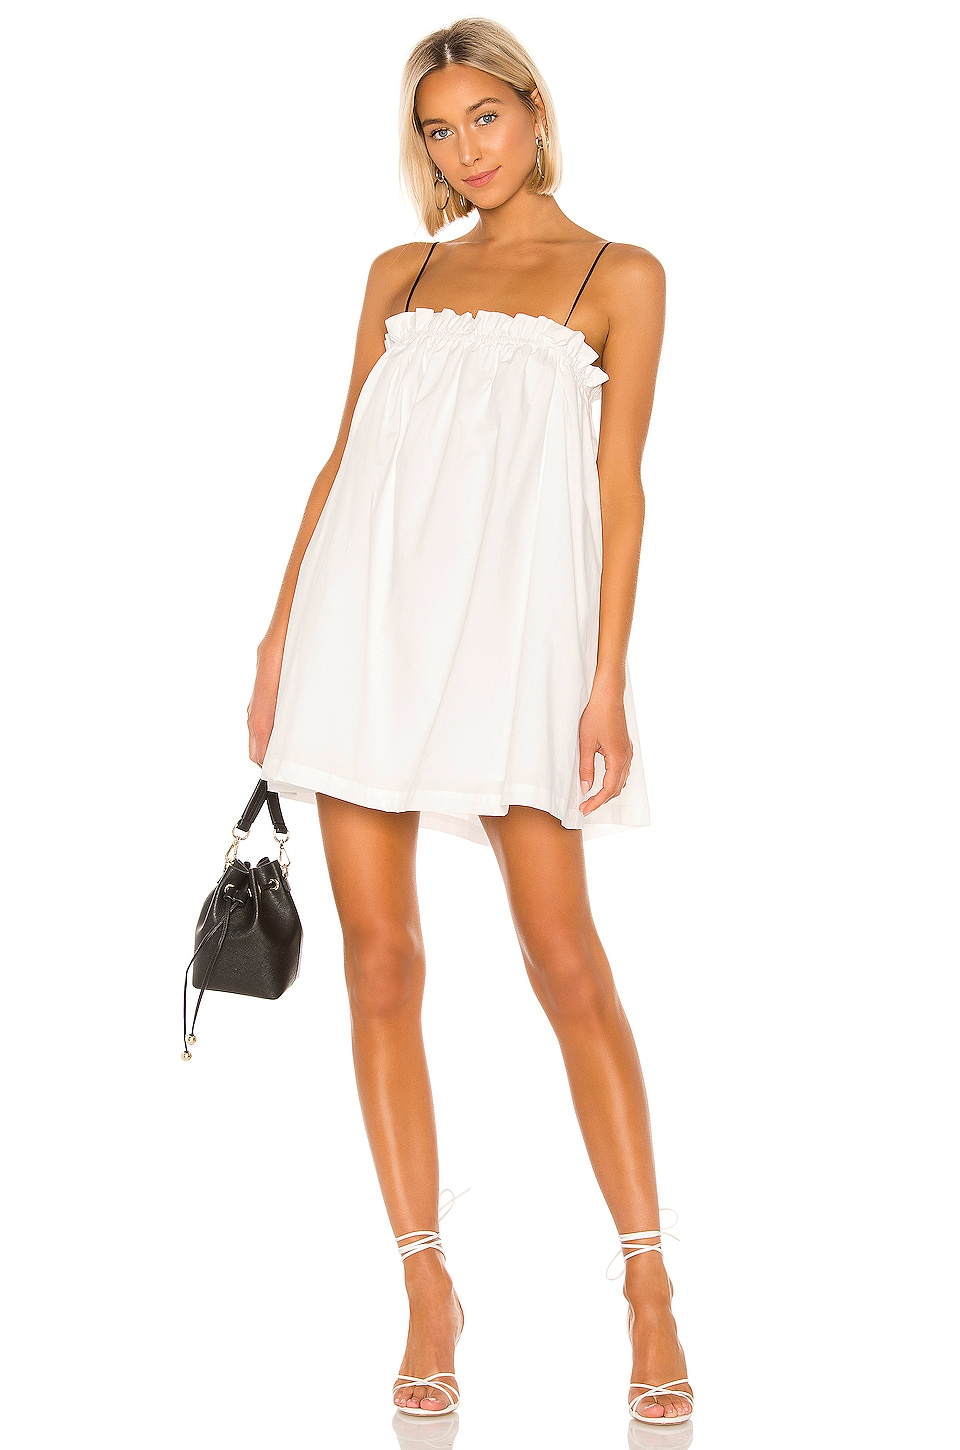 L'Academie The Arcello Mini Dress in White & Black